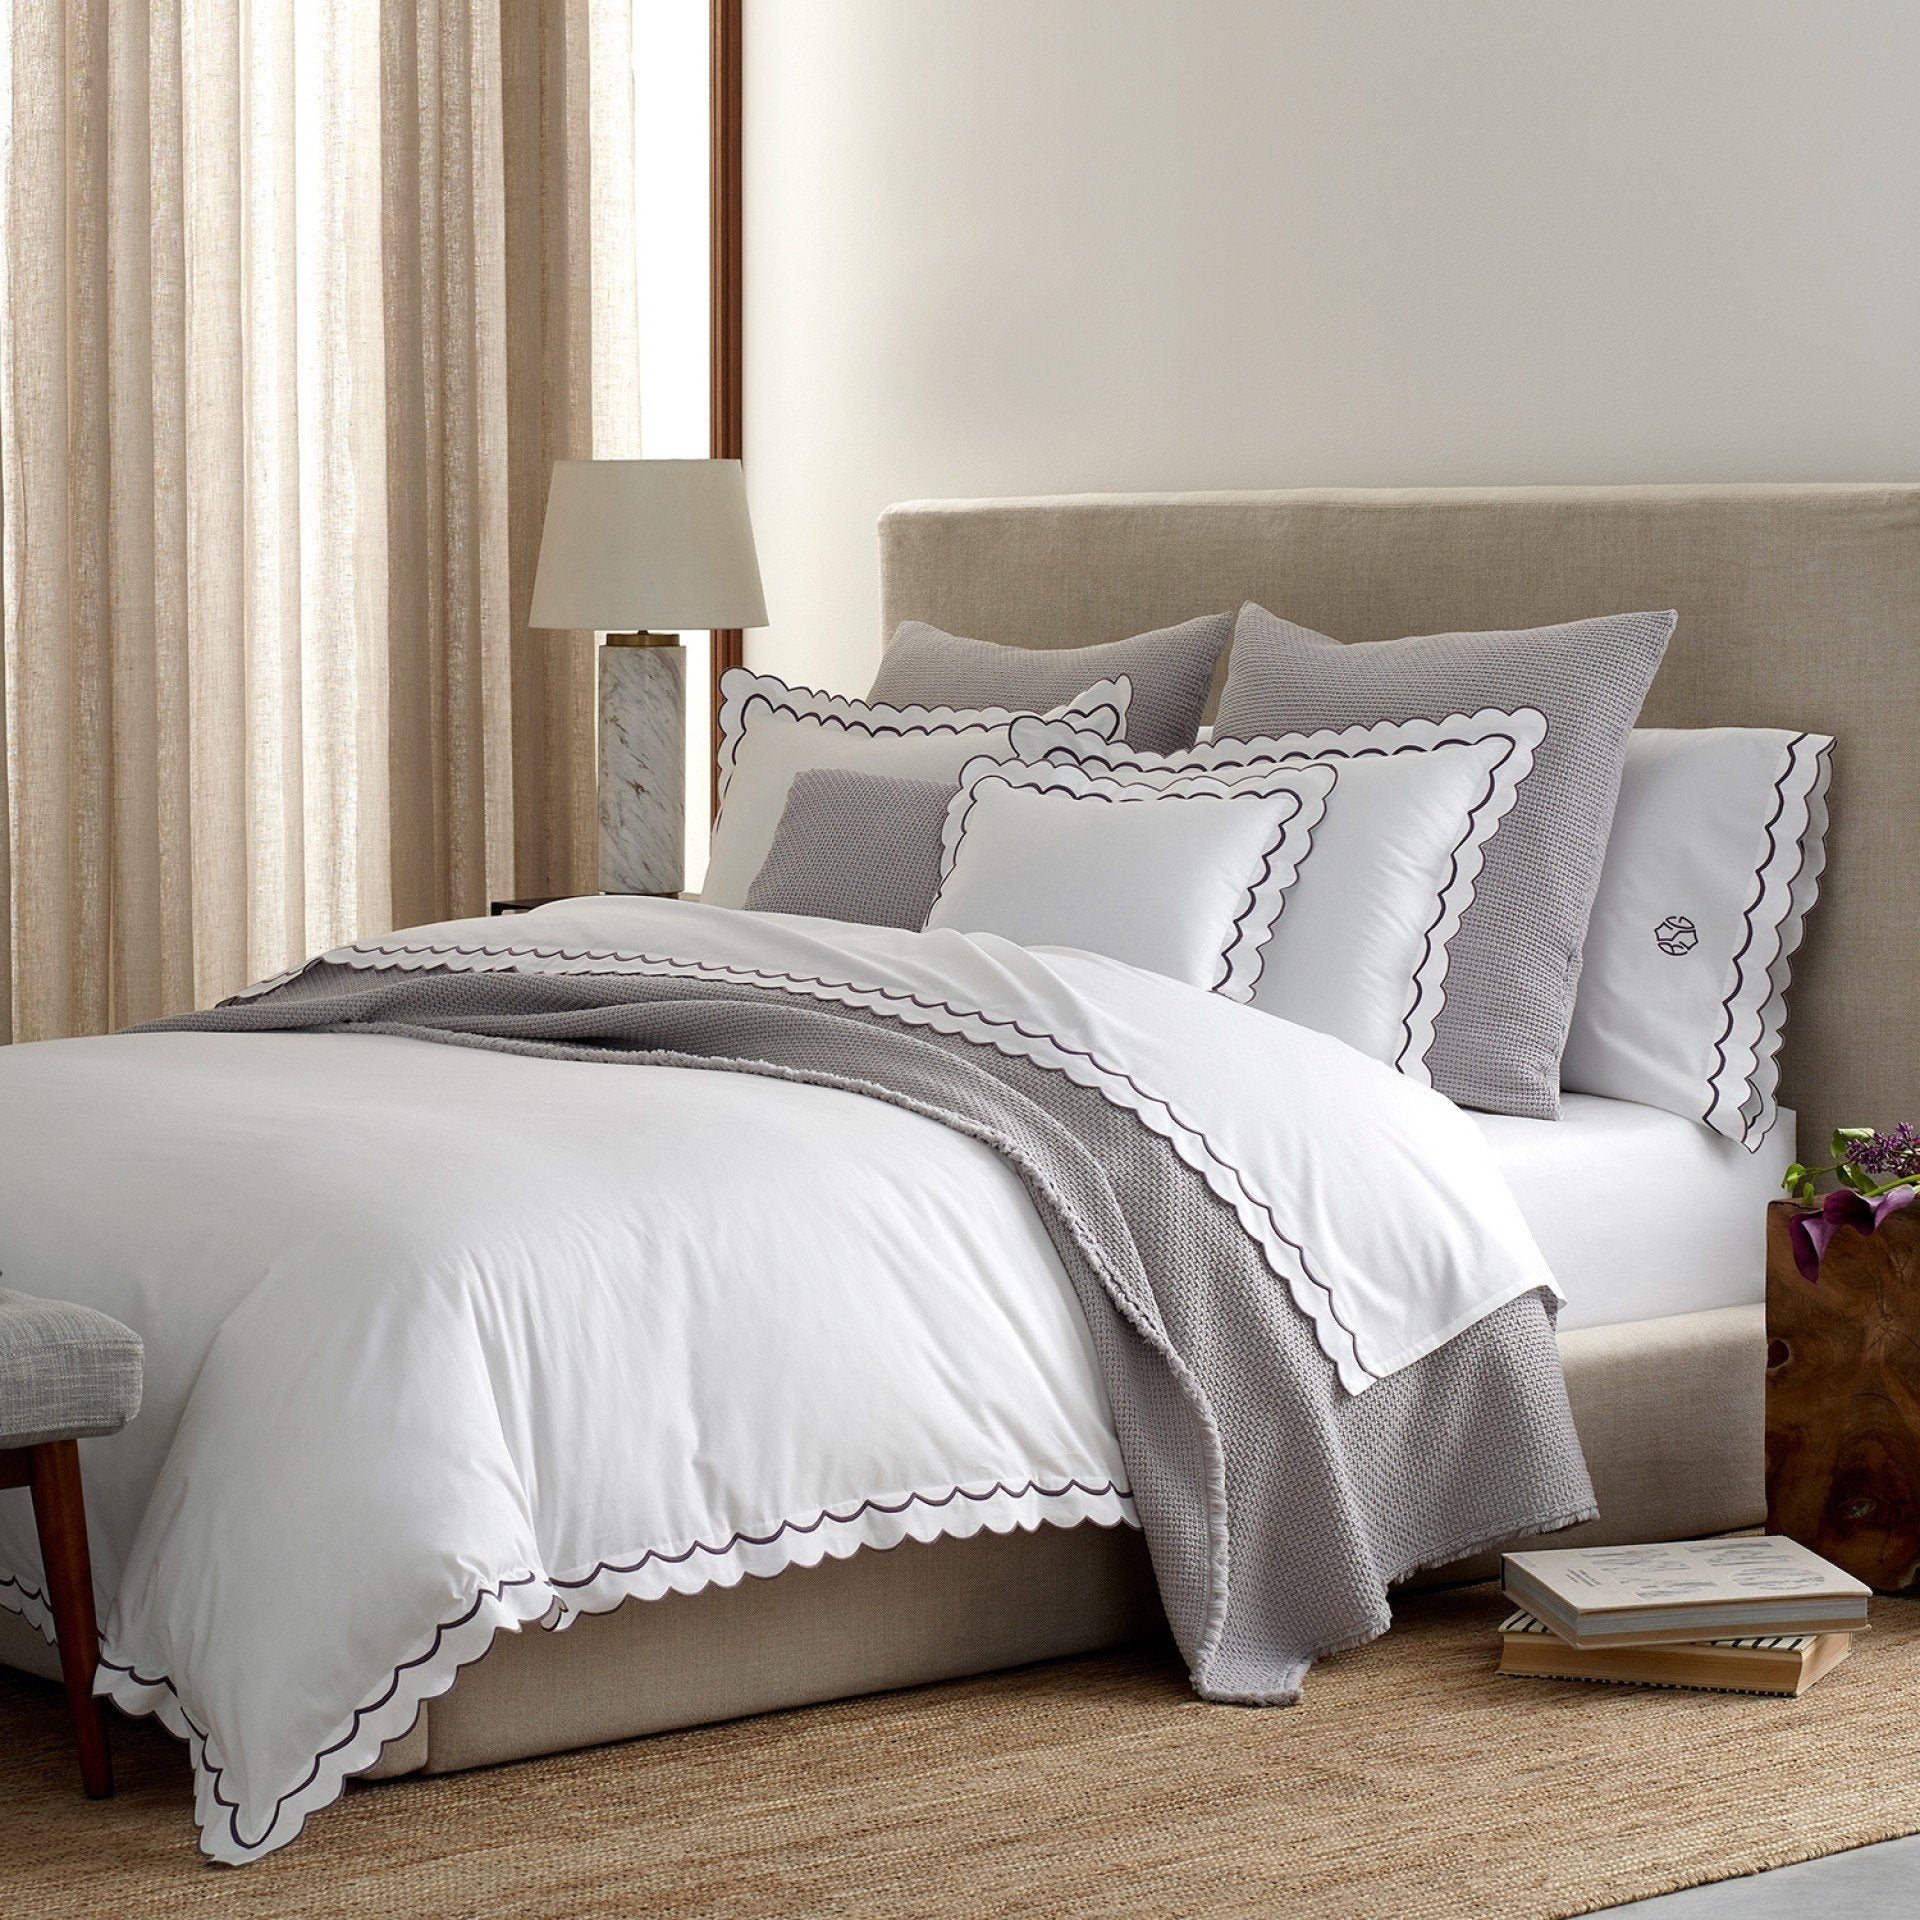 India Bedding by Matouk | Fig Linens and Home